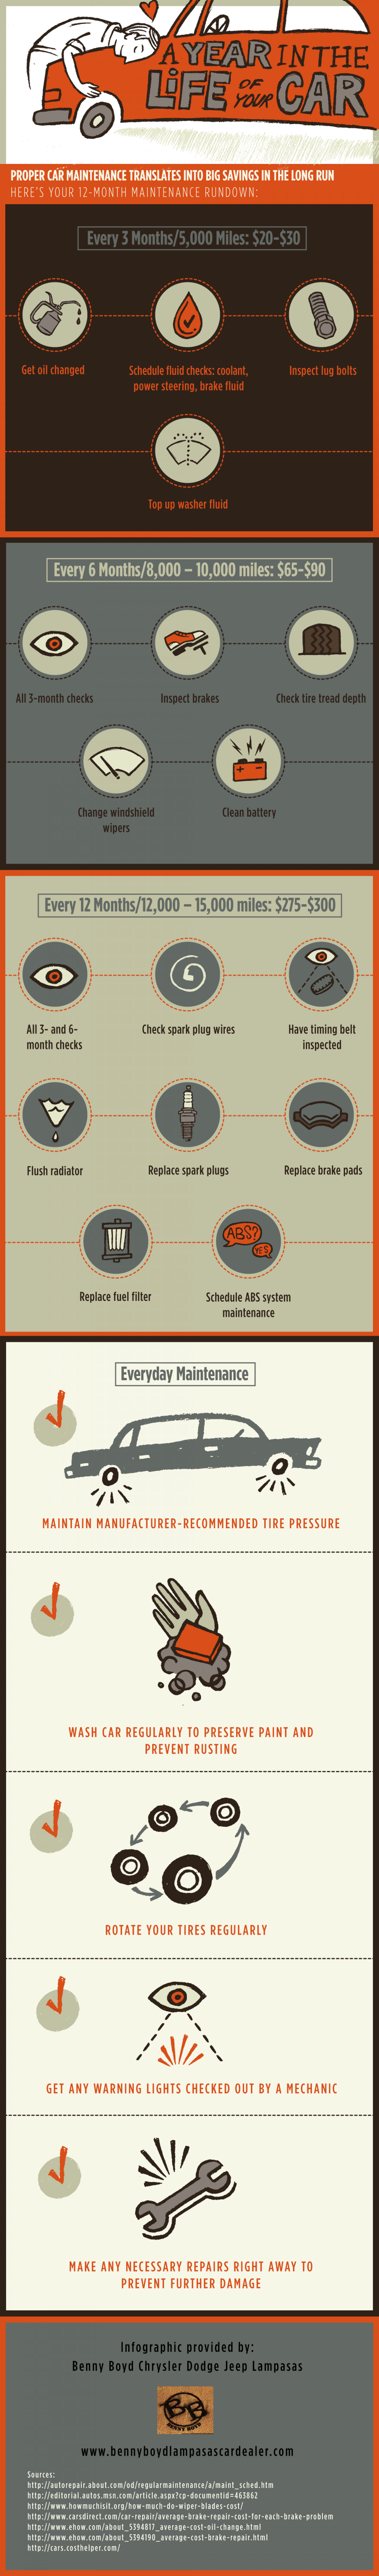 A Year in the Life of Your Car Infographic